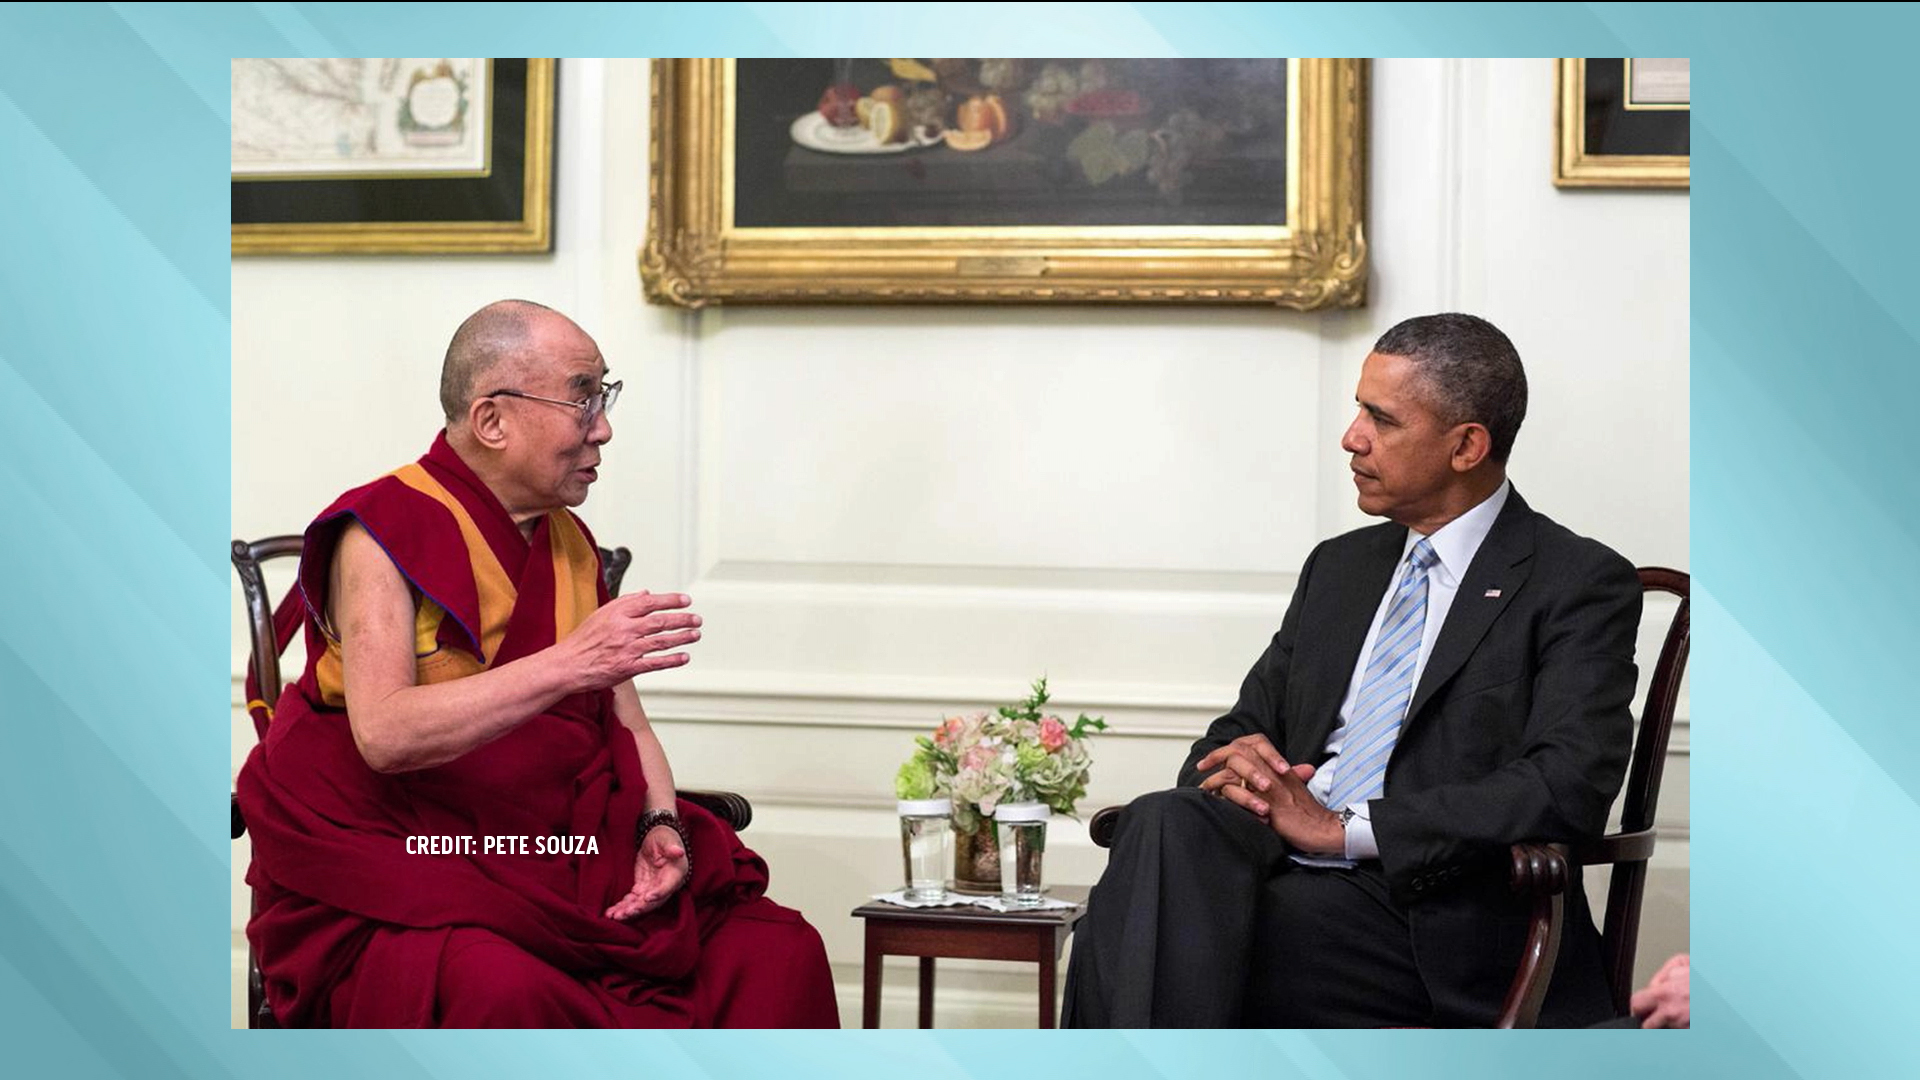 President Obama meets with the Dalai Lama